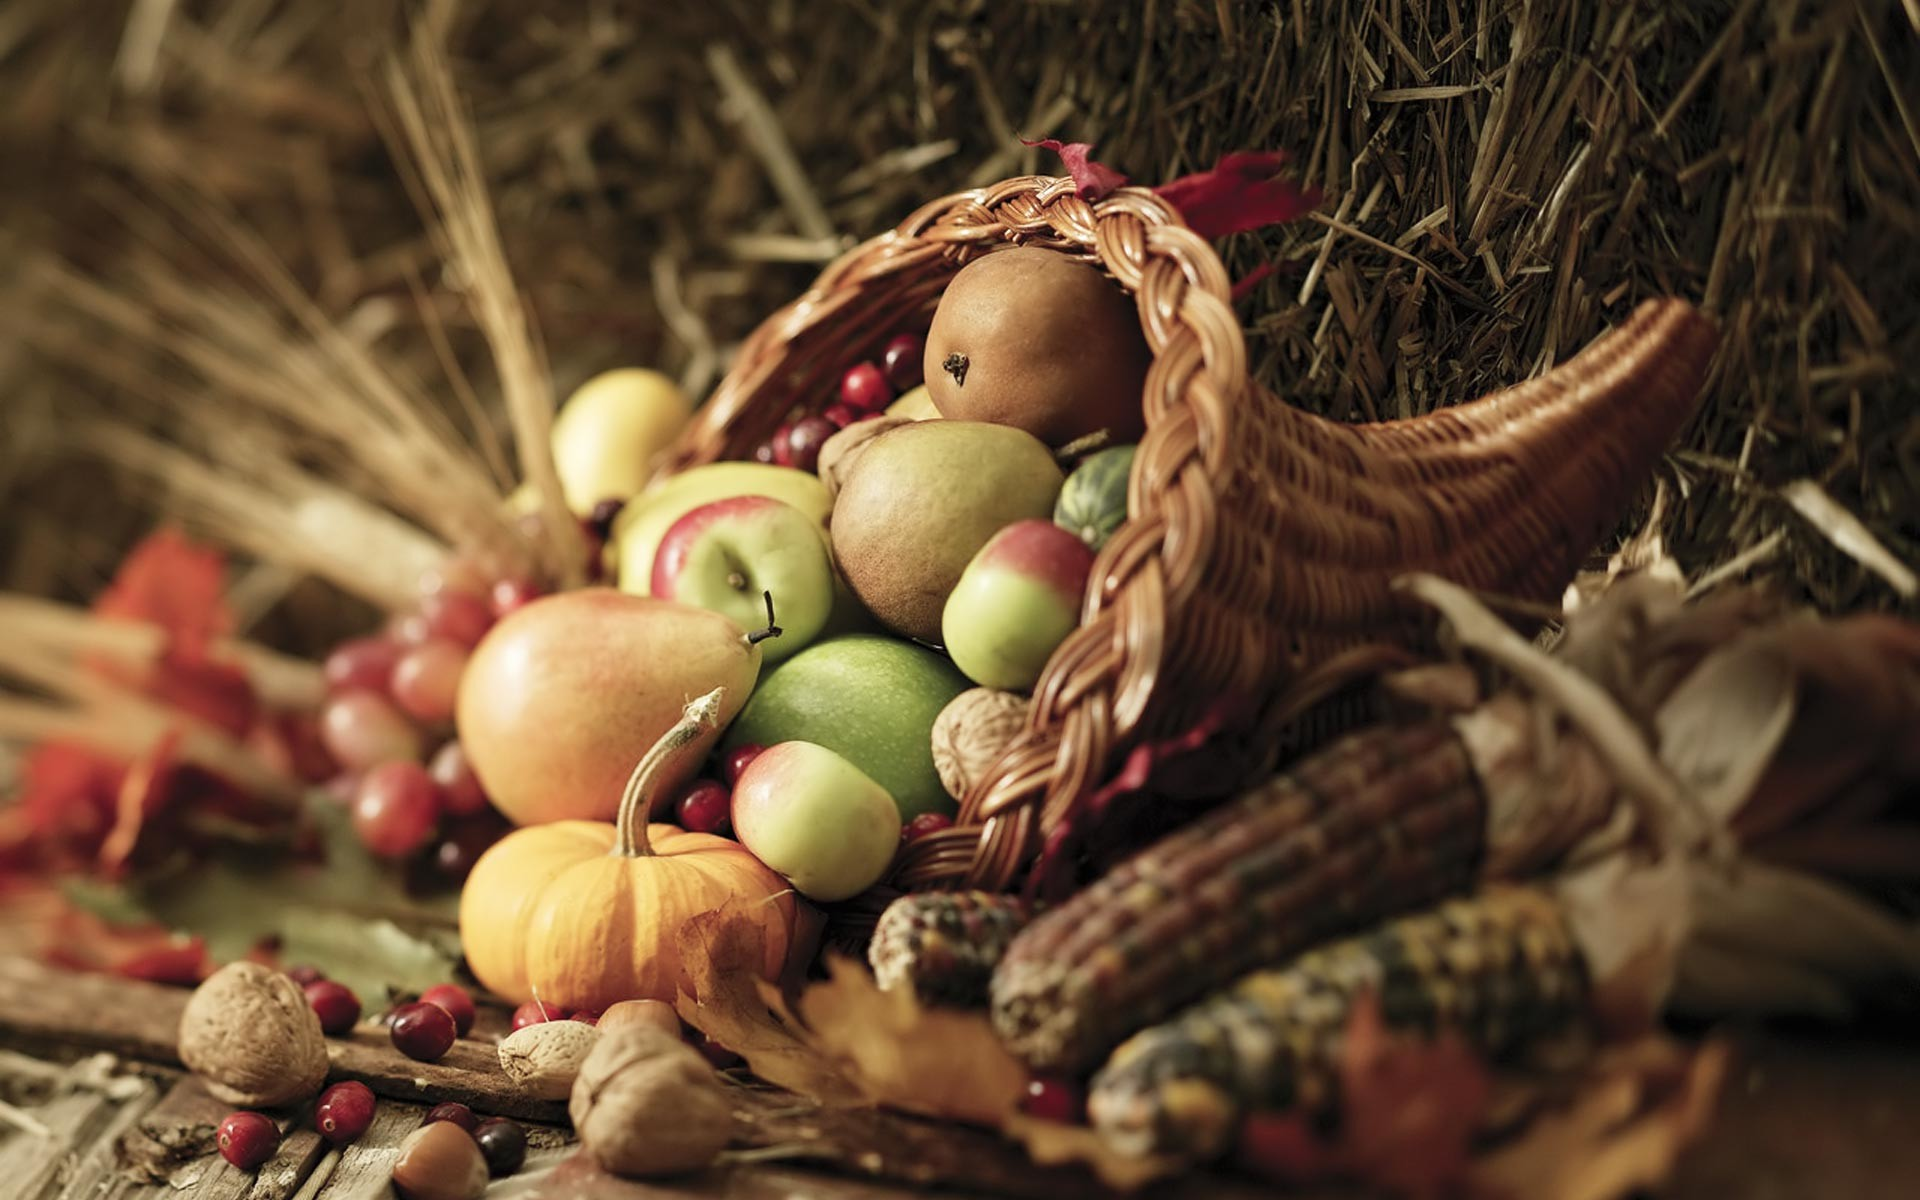 … animated-thanksgiving-desktop-backgrounds-wide-photos-hd-wallpapers-